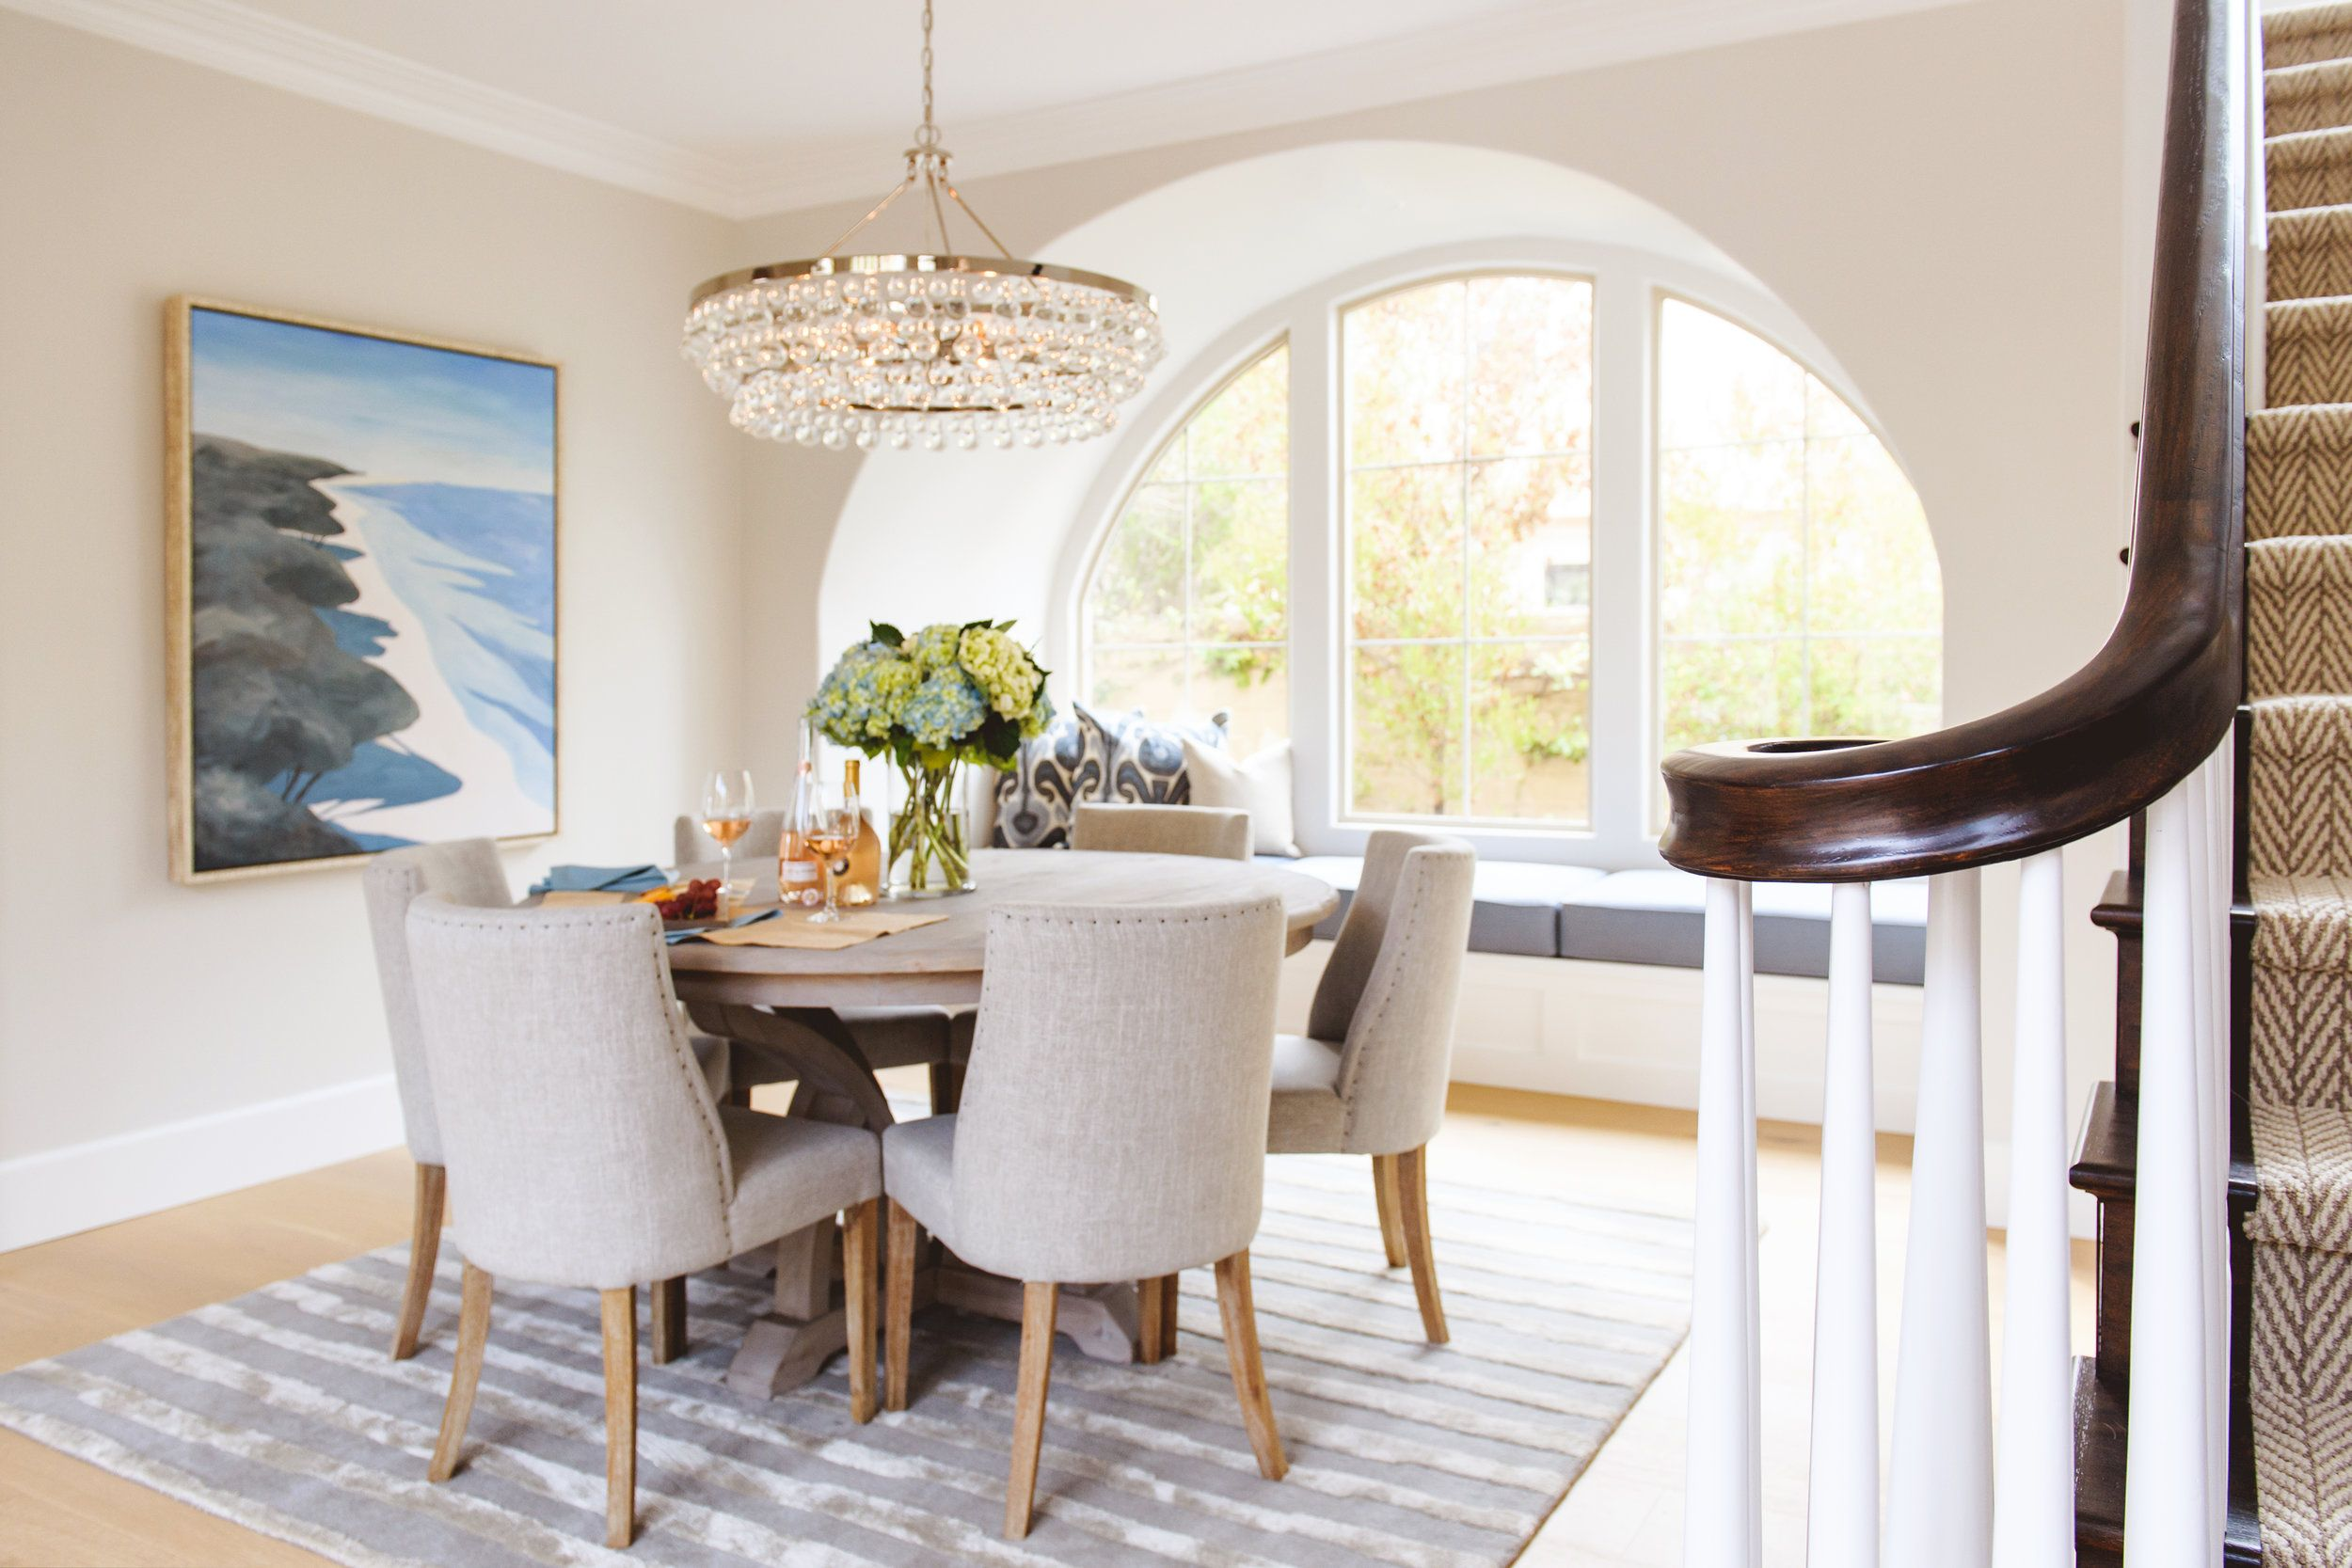 Staycation at Home Classy Coastal Dining Room Coastal